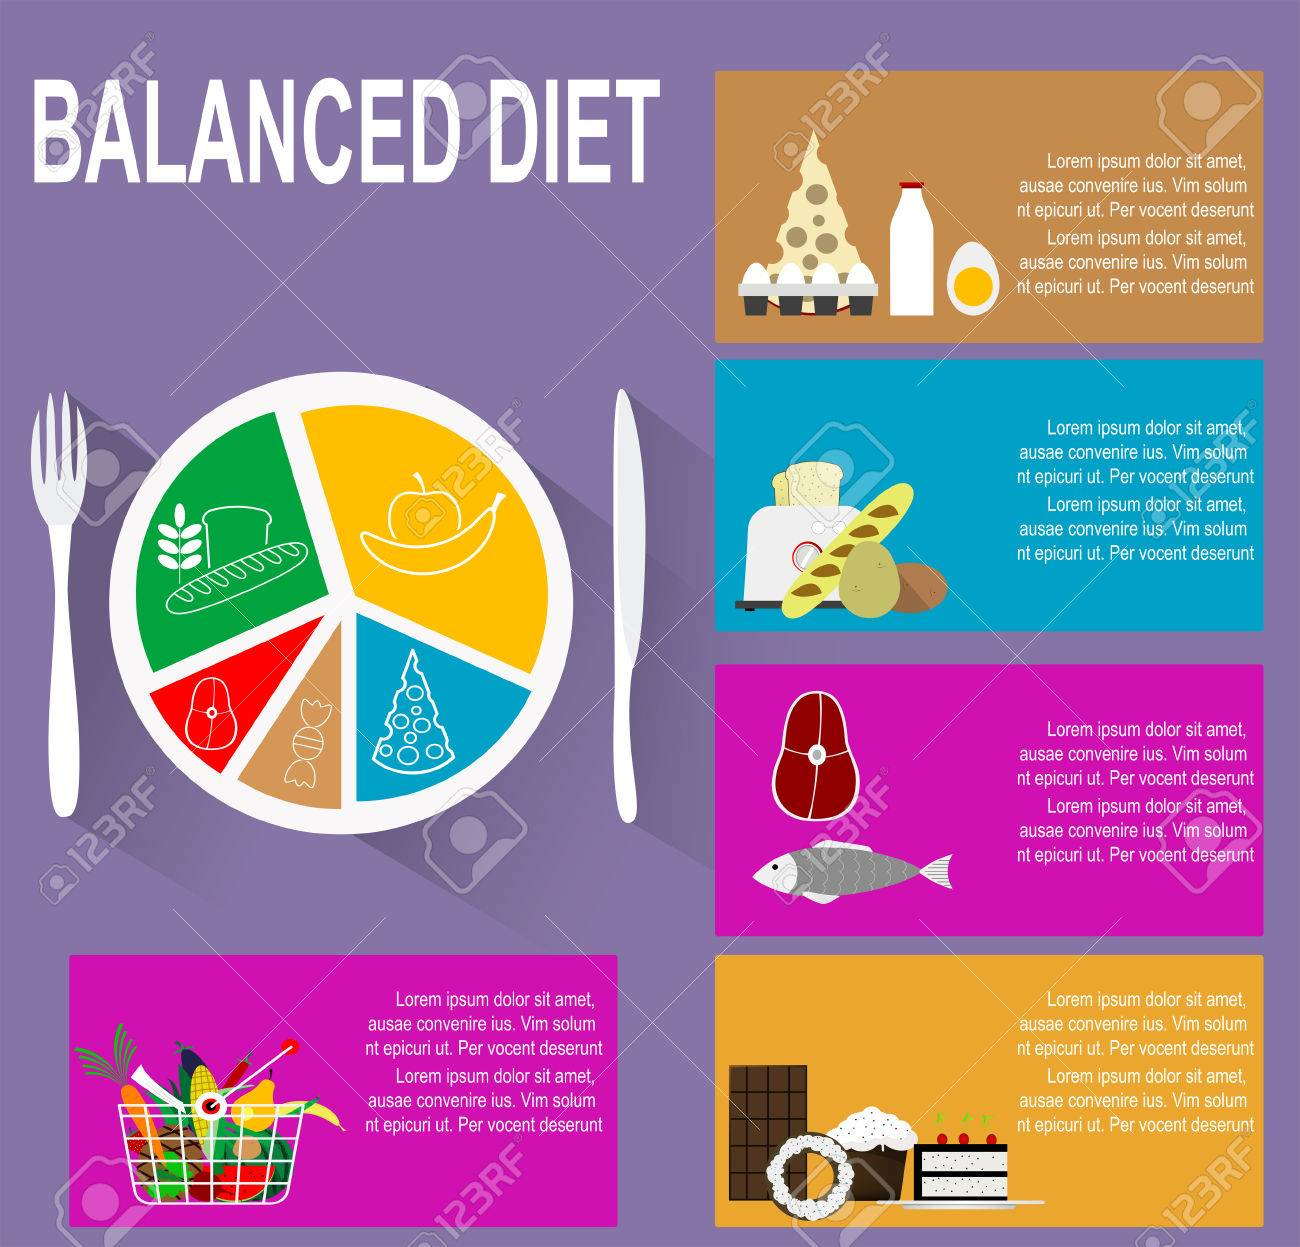 infographic chart of healthy plate nutrition proportions shows